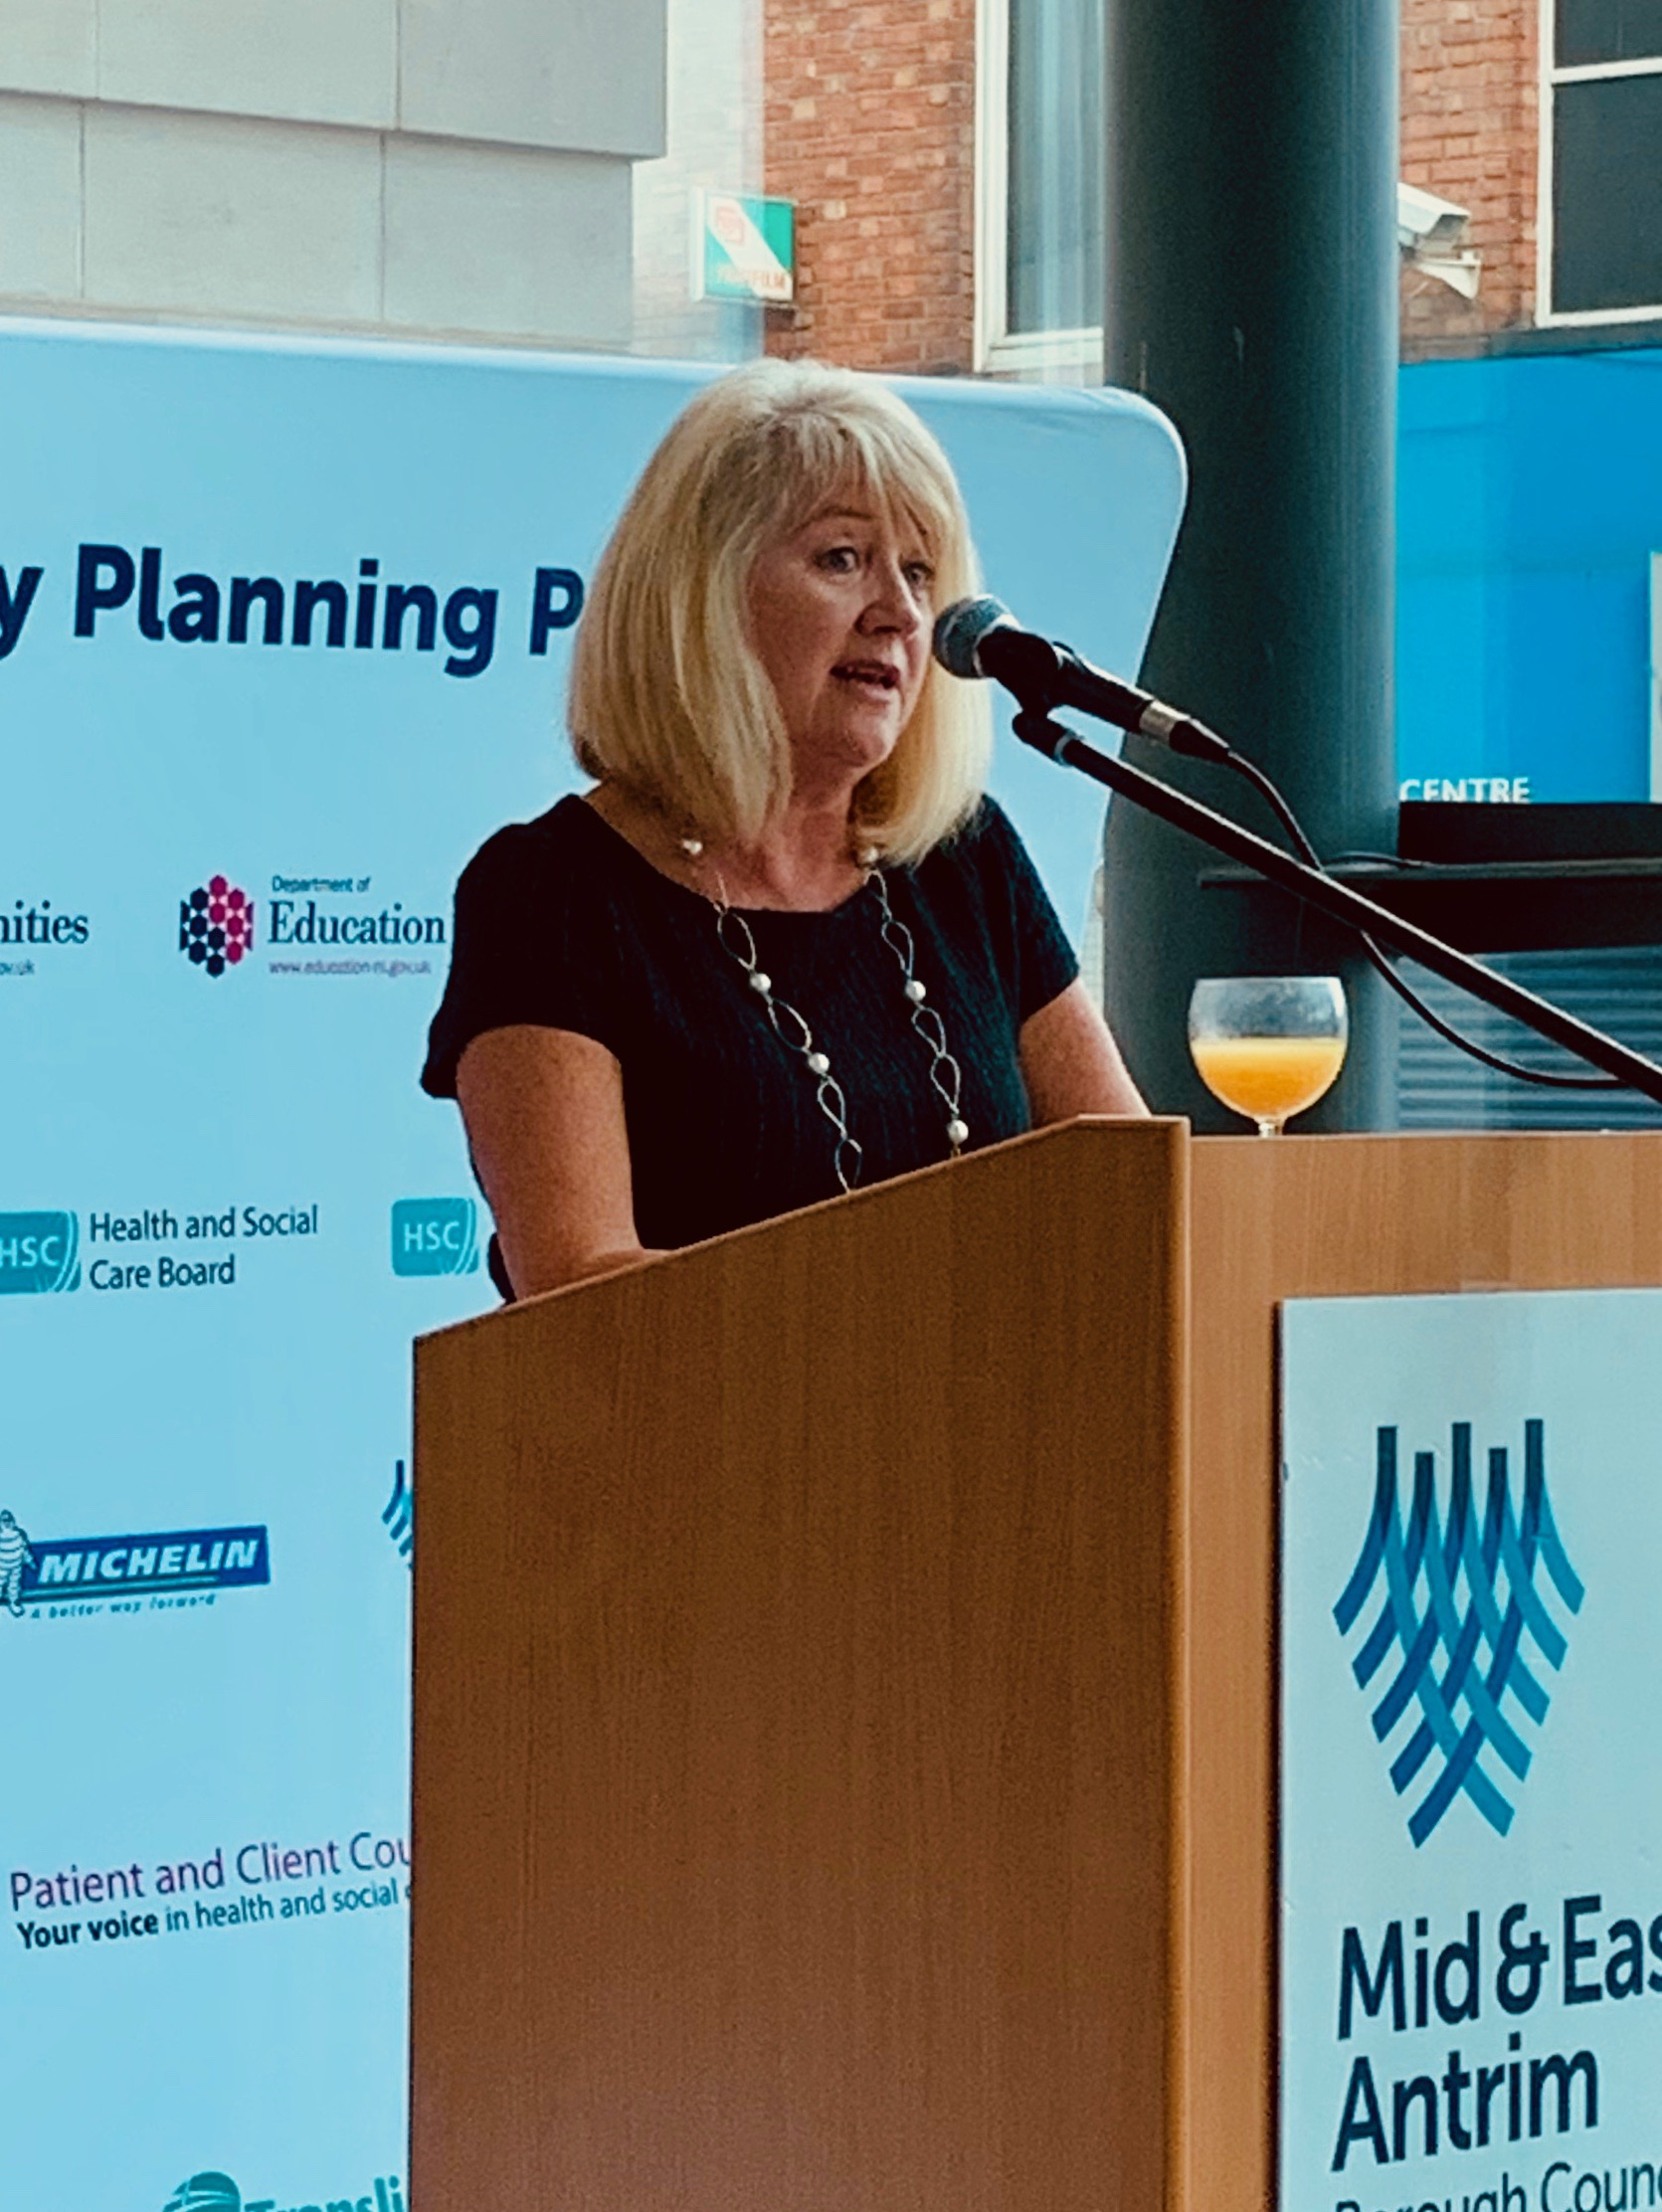 Lorraine Campbell, Chair of Supporting Communities